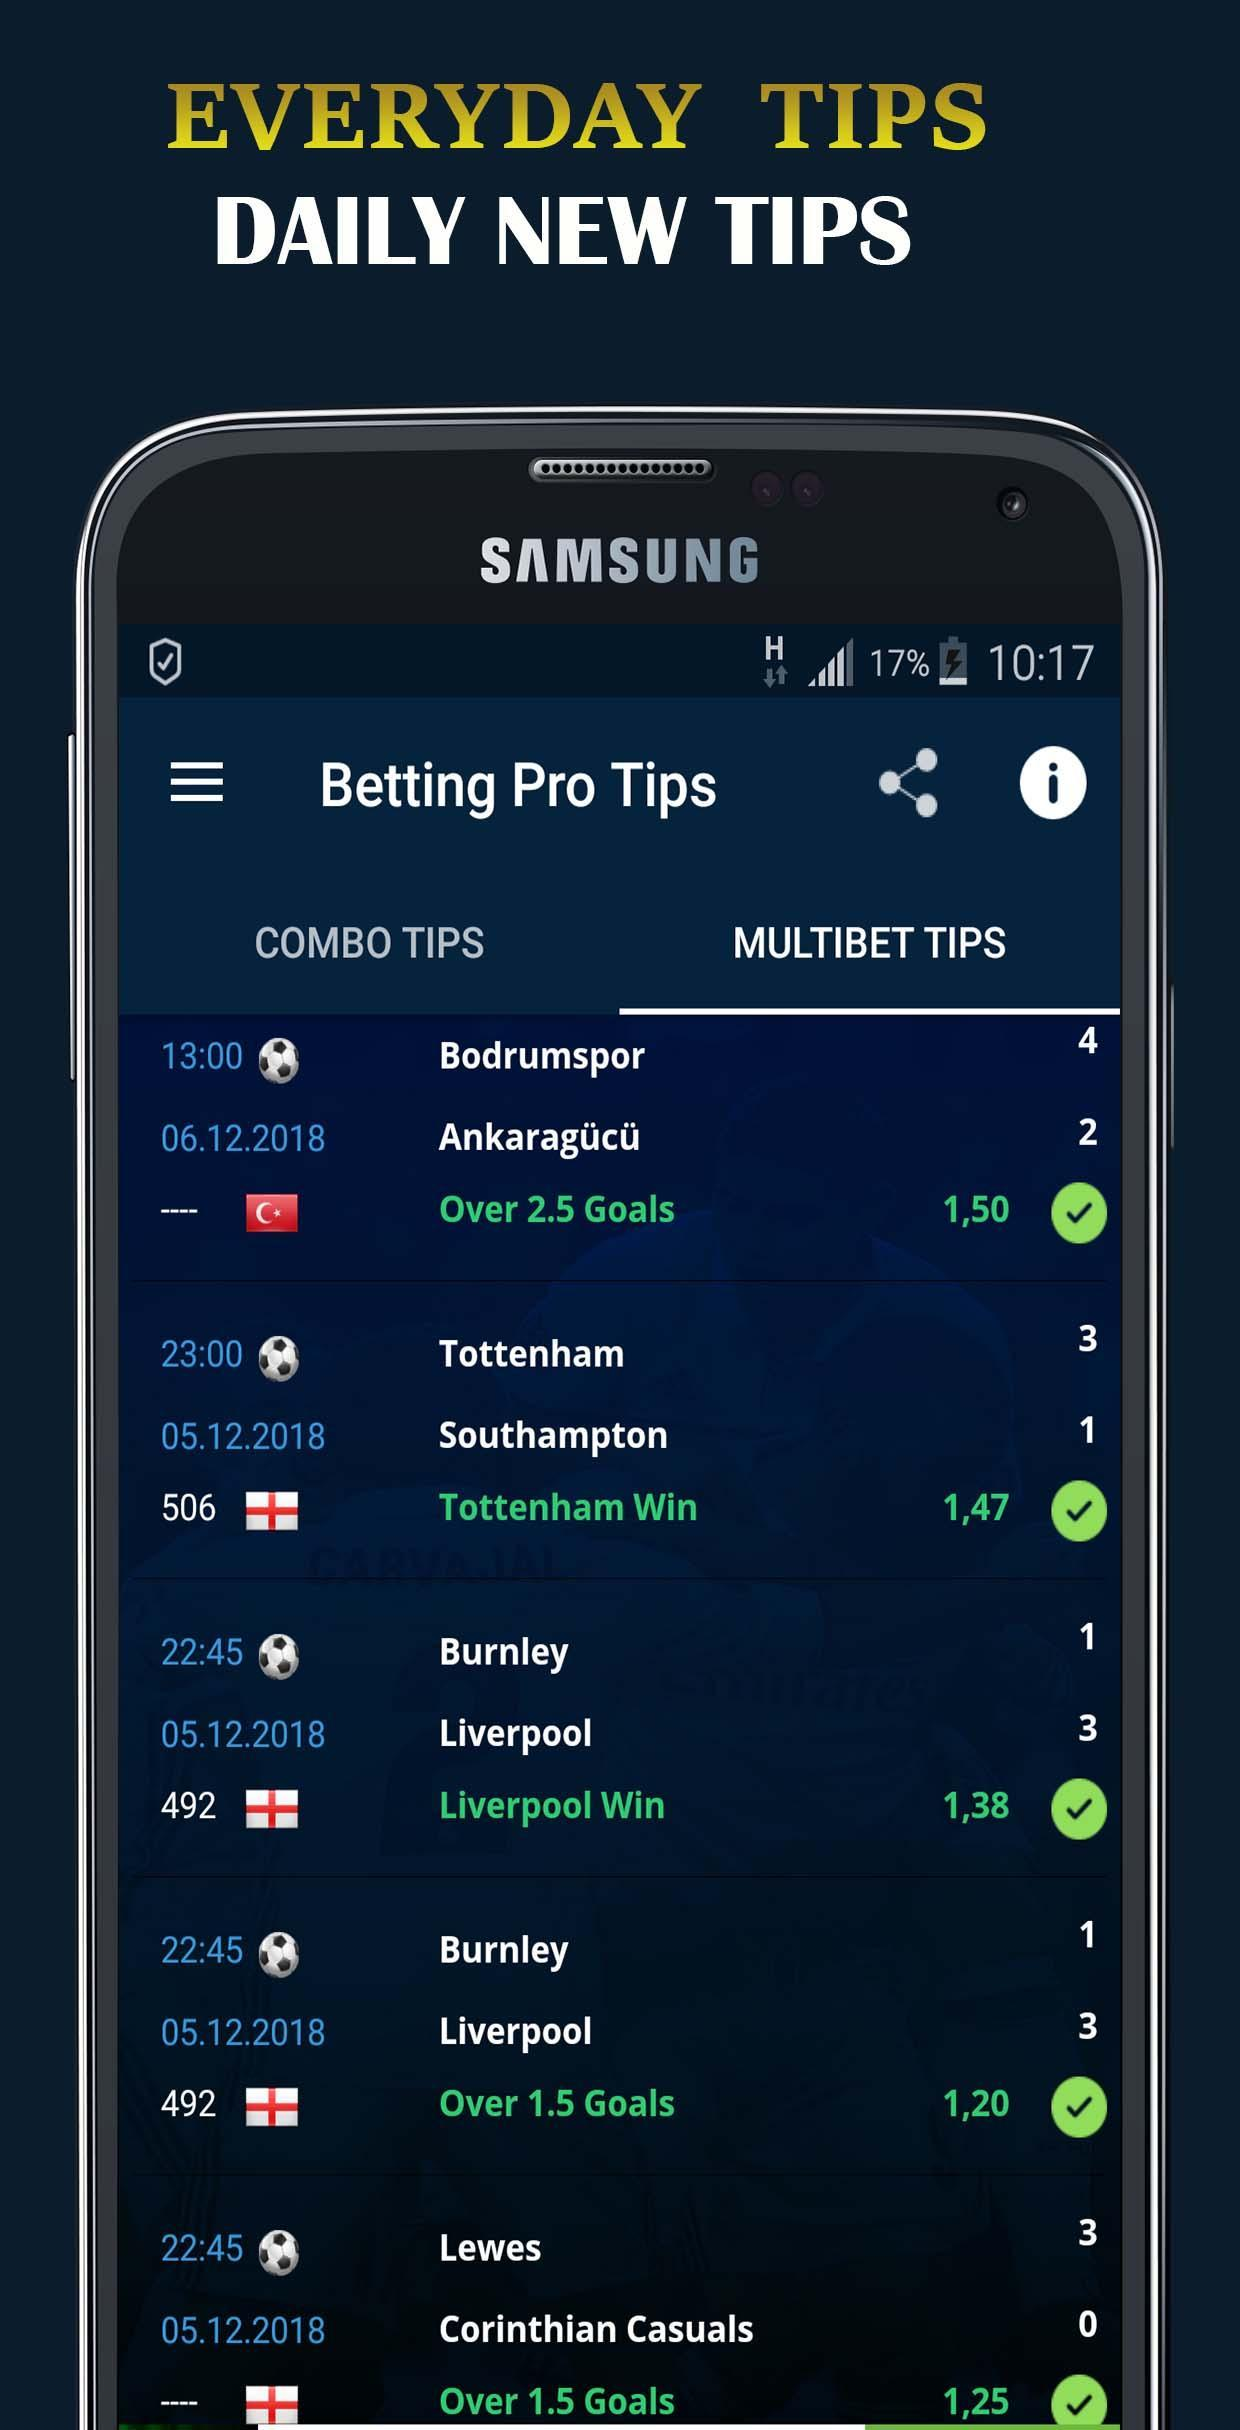 Bettingpro tips for getting sure betting calculator